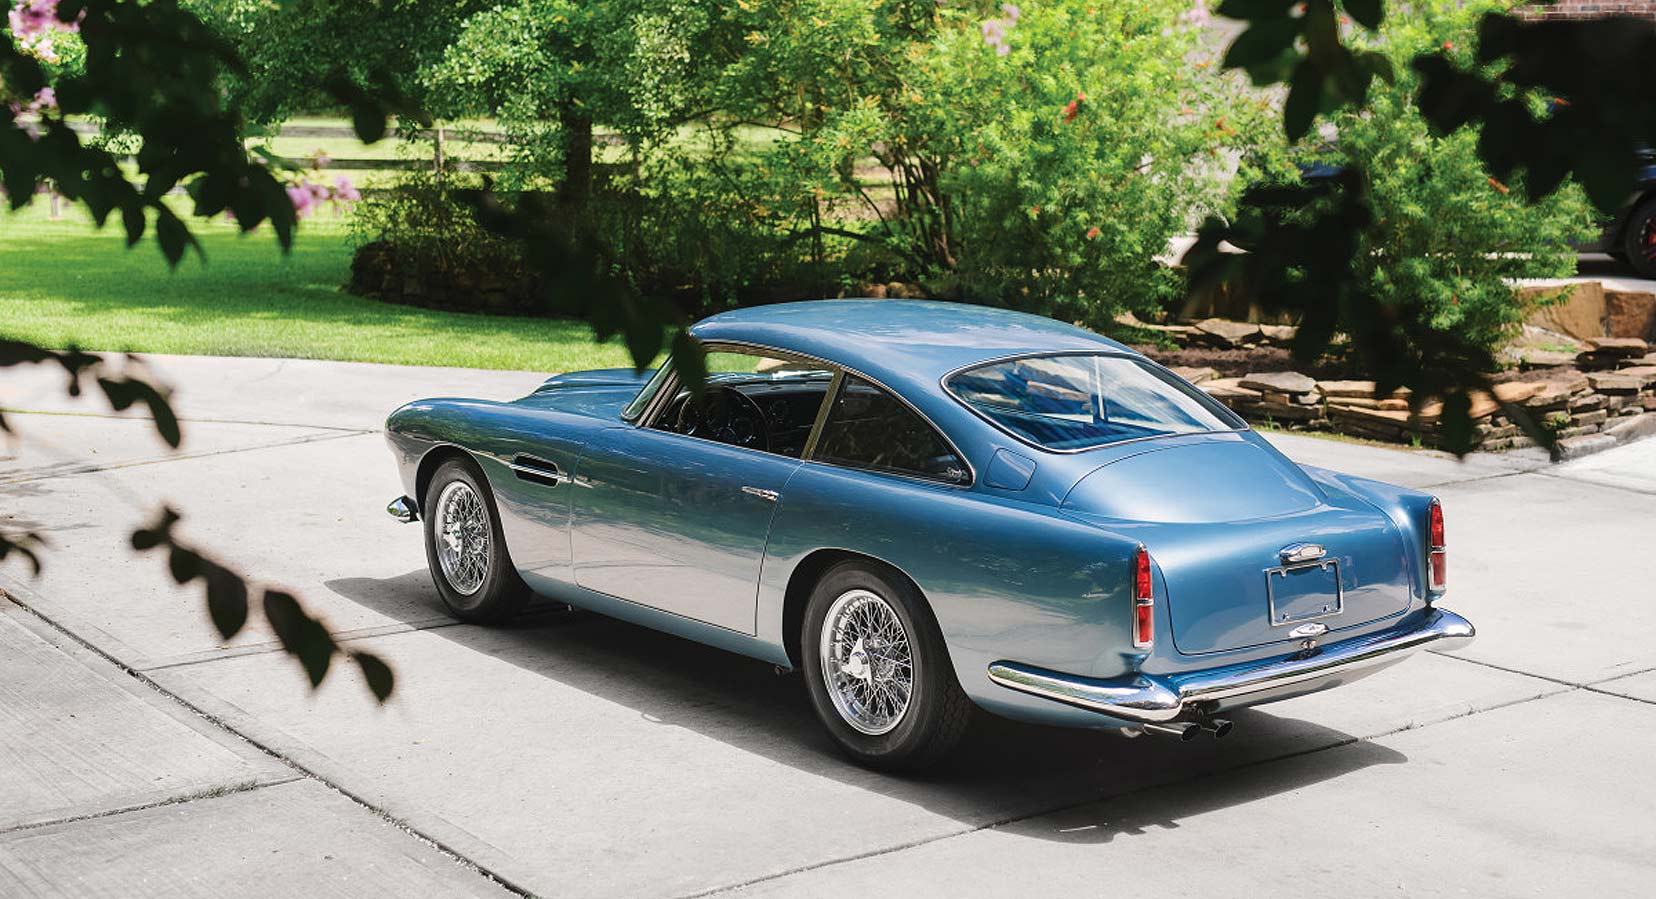 Aston-Martin-DB4-Series-II-main